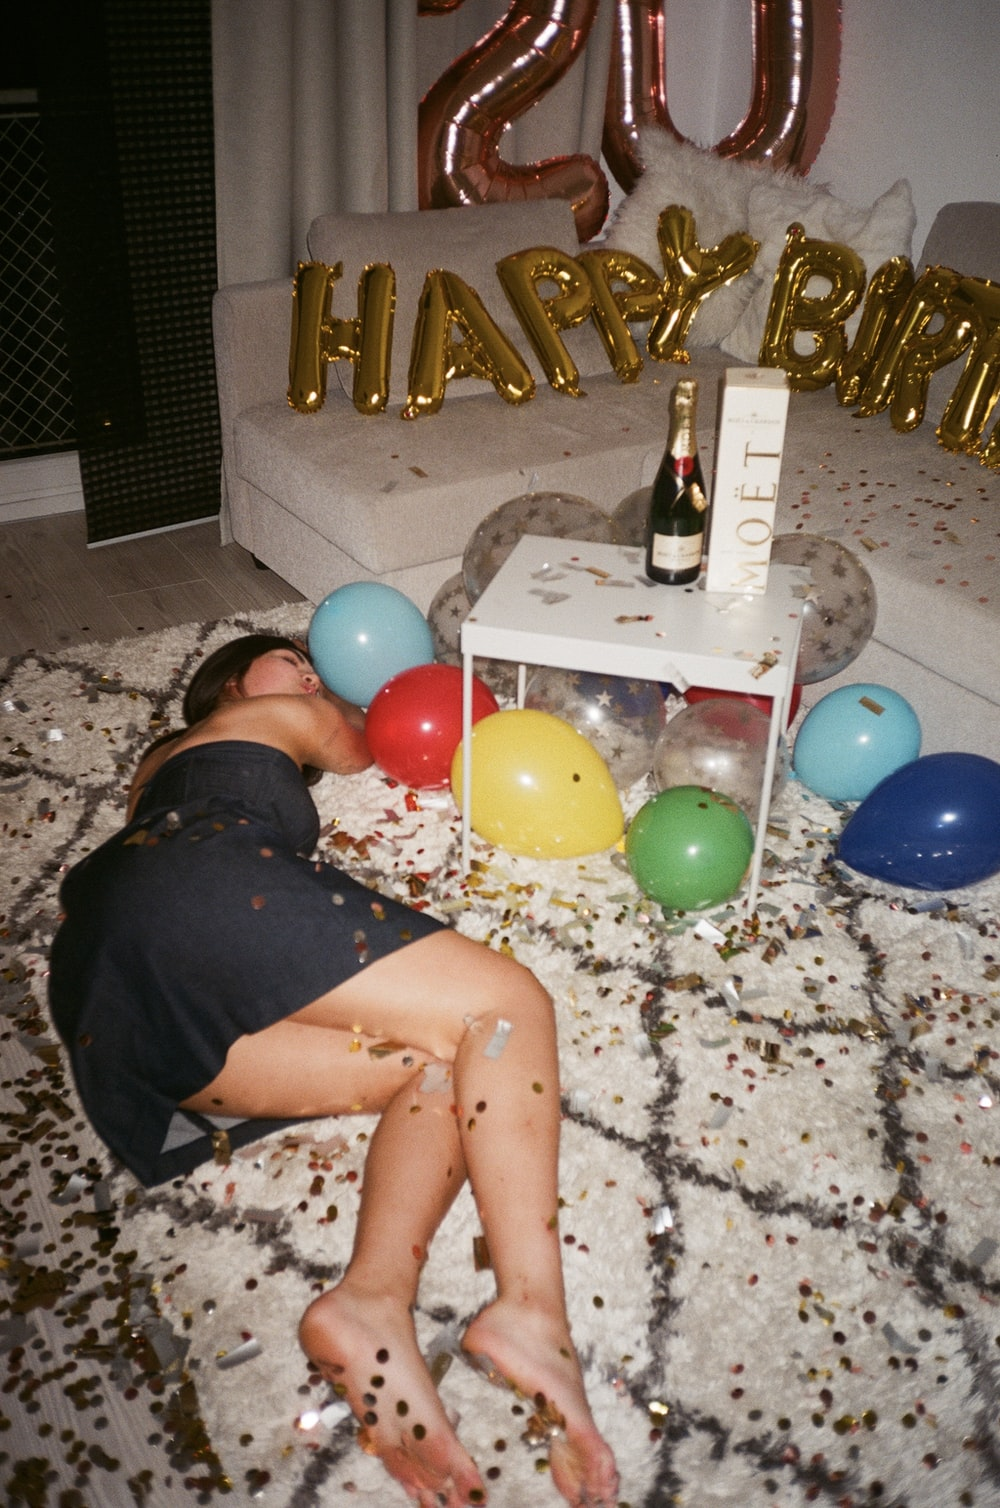 woman in black shirt lying on floor with balloons